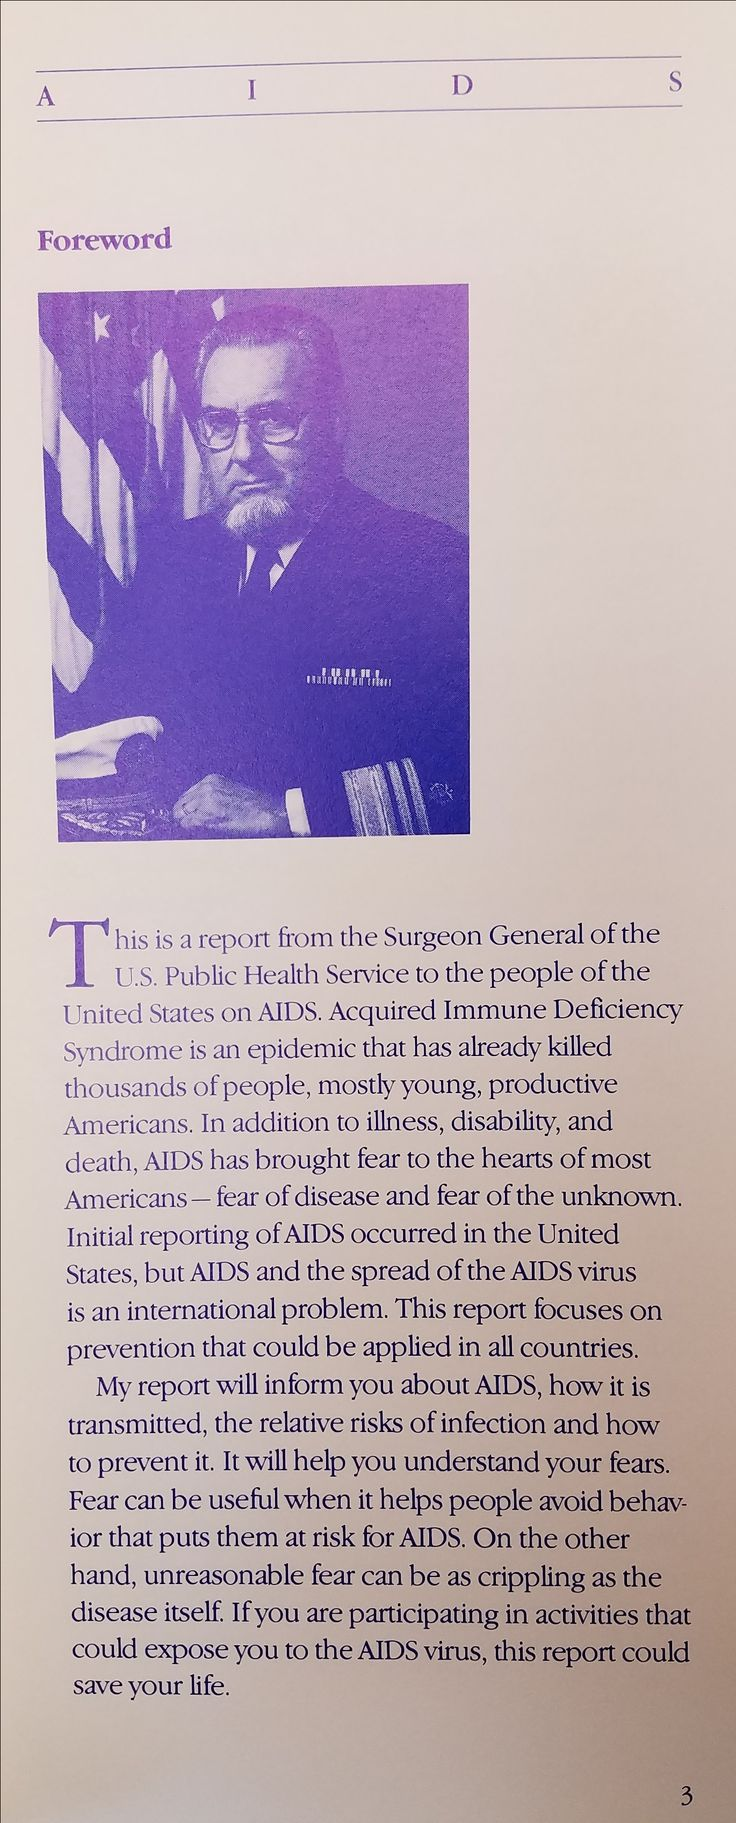 1987.  Surgeon General C. Everett Koop sought to alleviate Americans' fear of AIDS with information.  He described the transmission and symptoms of AIDS, the state of the epidemic, and discussed condom use as a way to combat the spread of AIDS.